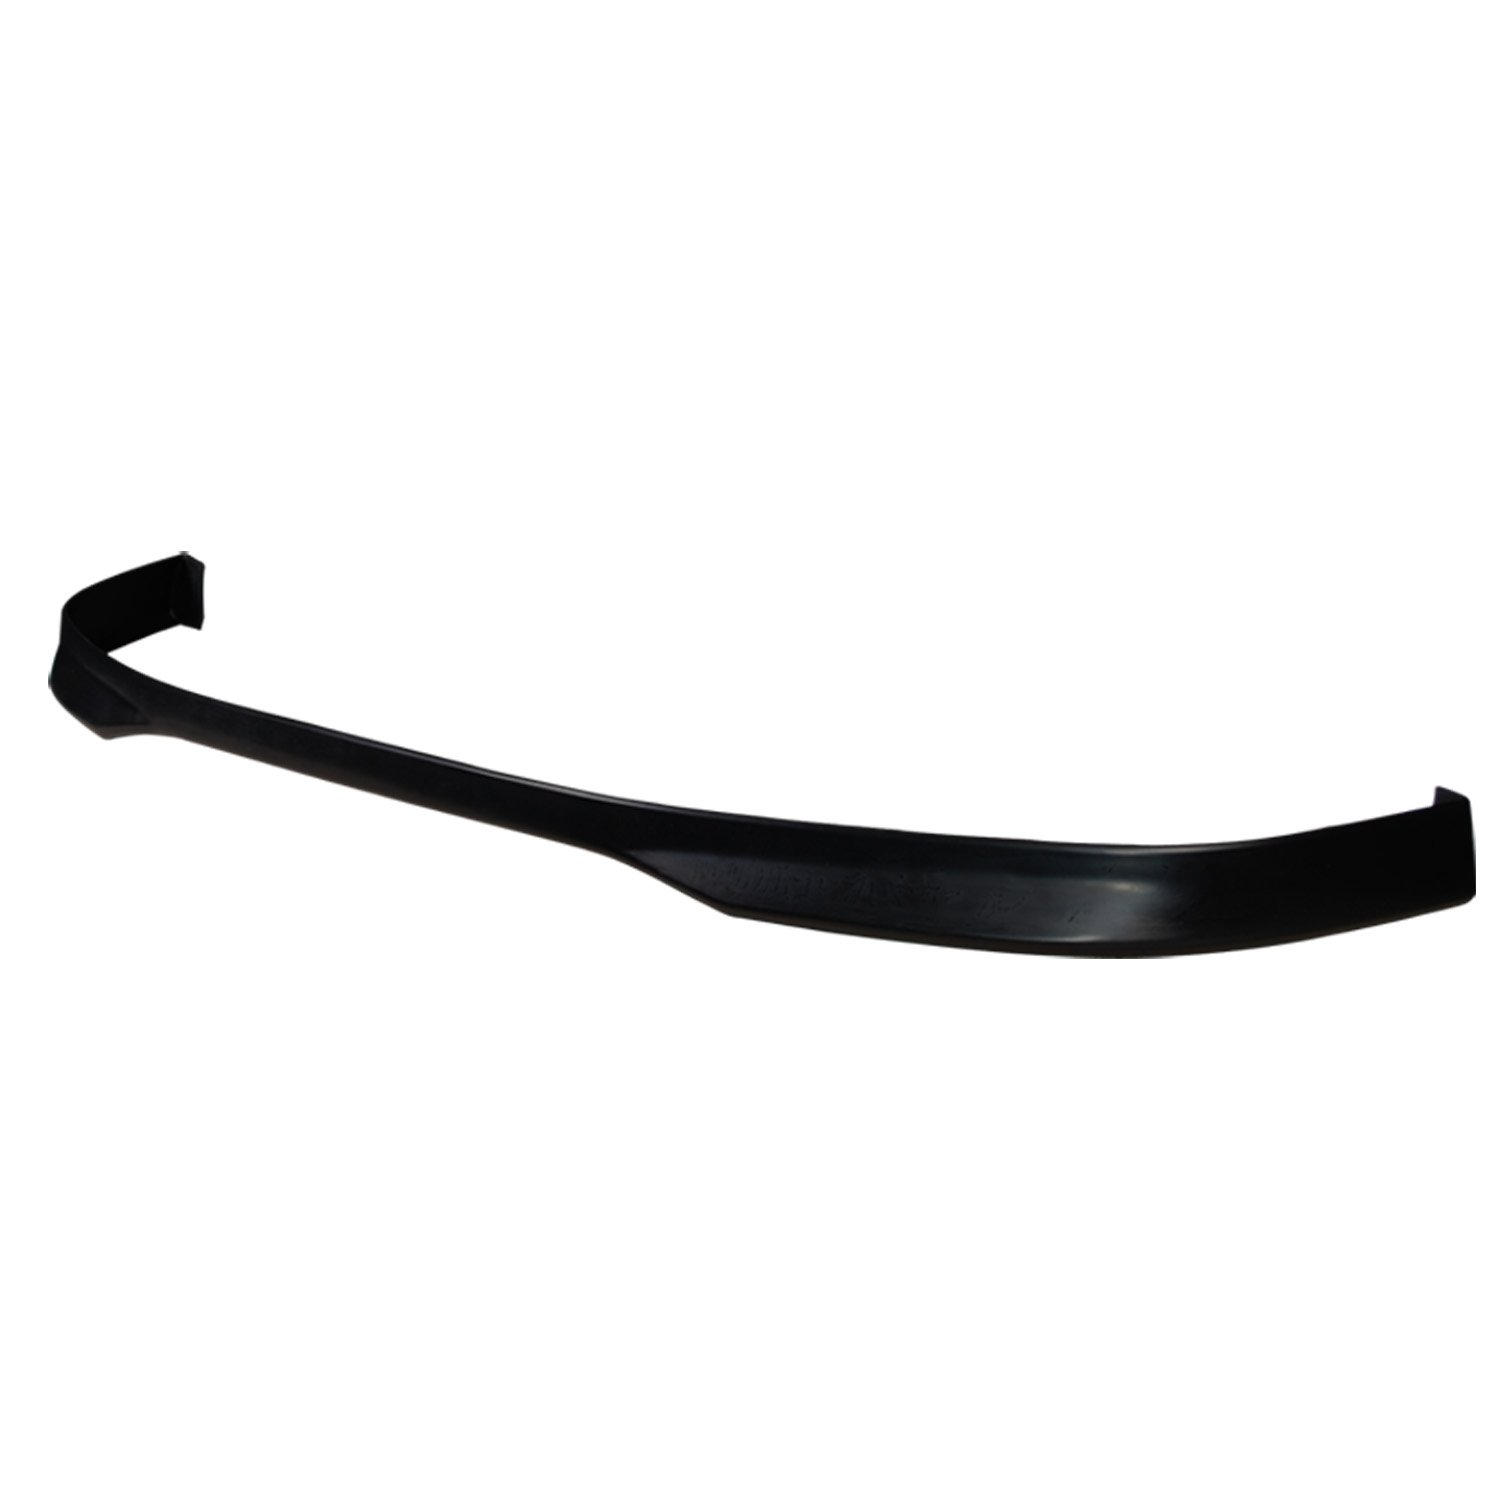 TC Sportline BO-HOCI991221 T-R Style PU Polyurethane Front Bumper Lip for 1999-2000 HONDA CIVIC Coupe Sedan Hatchback